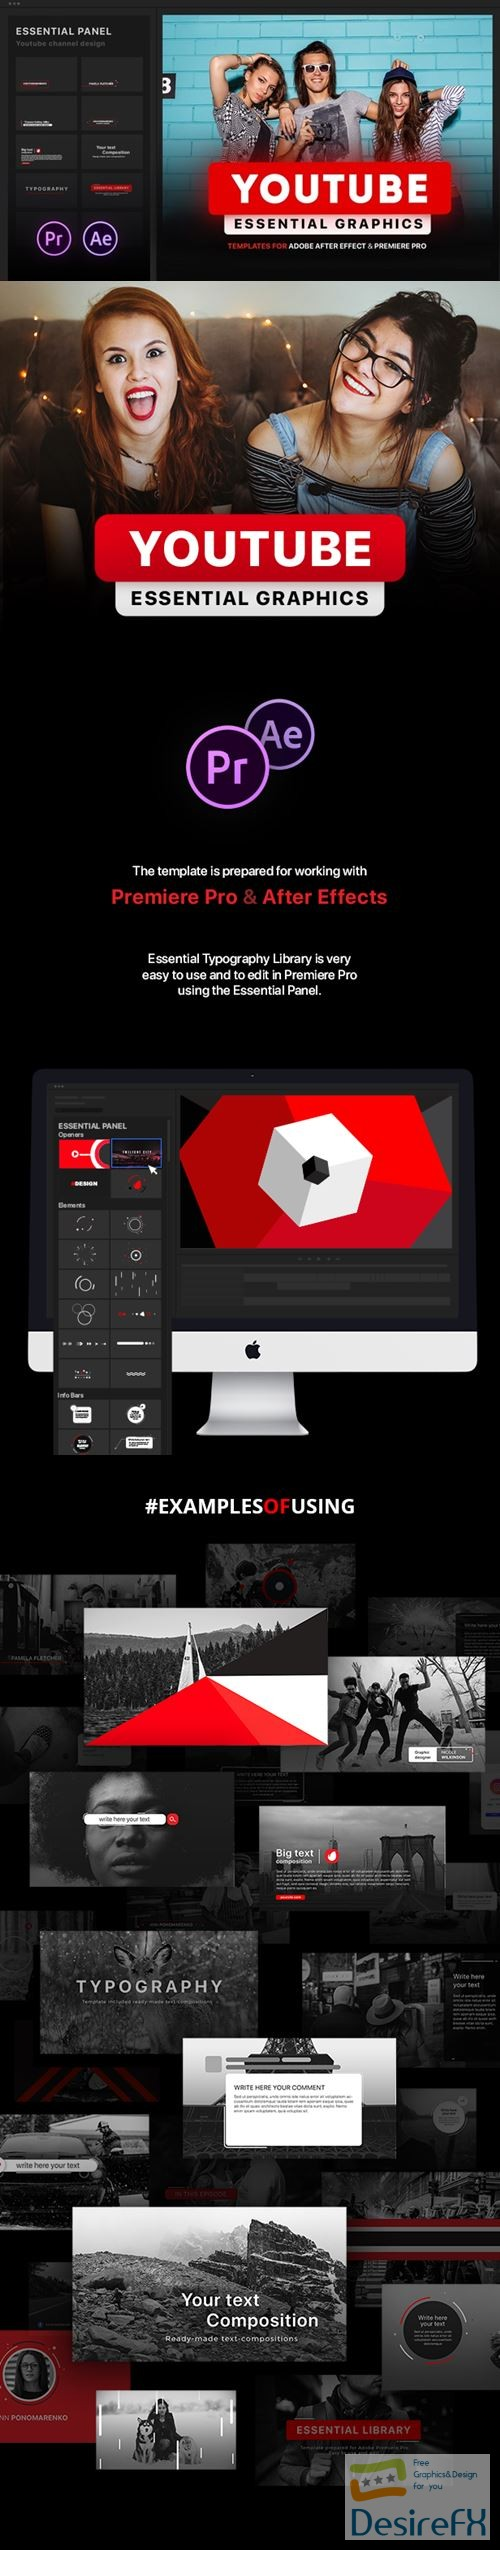 Desirefx com | Download Videohive 21601793 Youtube Essential Library